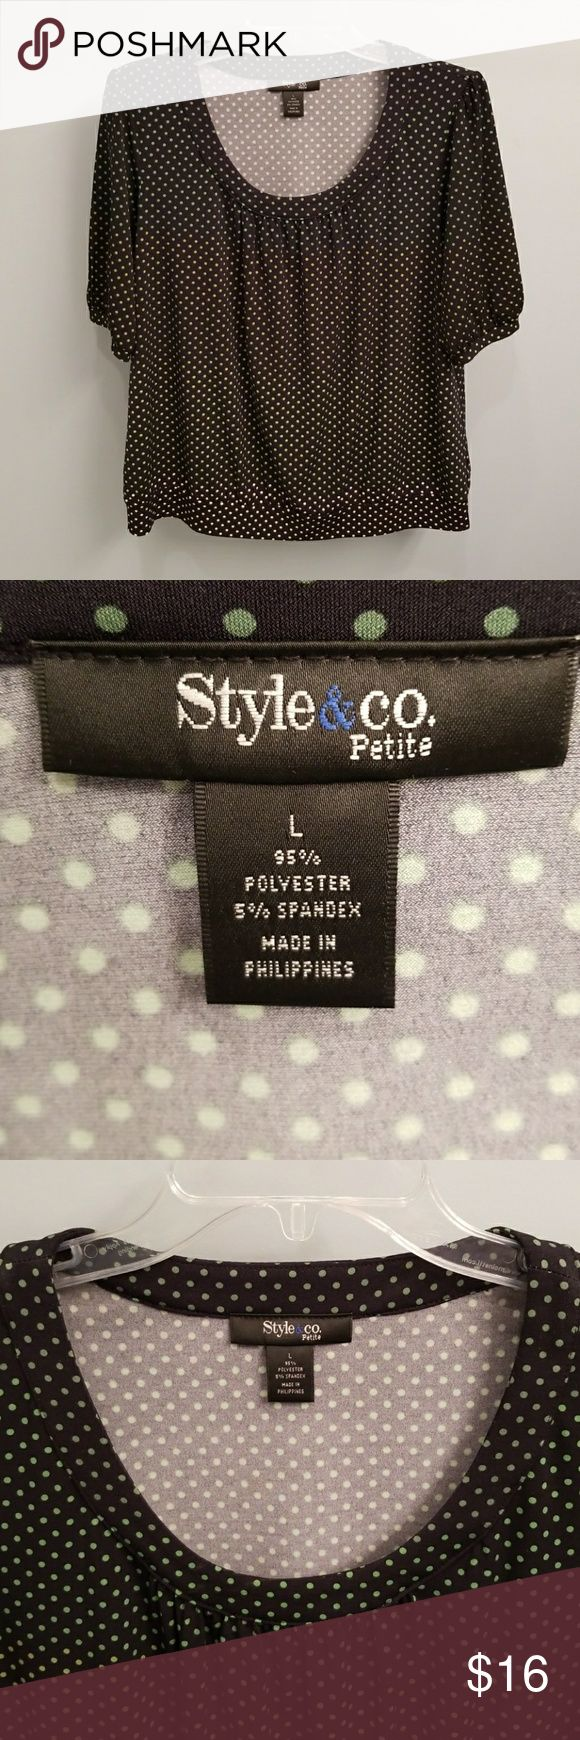 Style & Co. Black and Green Polka Dot Top in Large Green & black polka dot short sleeve top from Style & Co Petite in a size large P. 95% polyester & 5% spandex.  This top measures approximately 23 inches from the top of the shoulder to the bottom & 18 inches from armpit to armpit.   This top has an ombre effect as the color of the polka dots get lighter.  The neckline & shoulders have a dark green and at the hem the polka dots are a cream color.  Very pretty.  Scoop neckline & the sleeves…